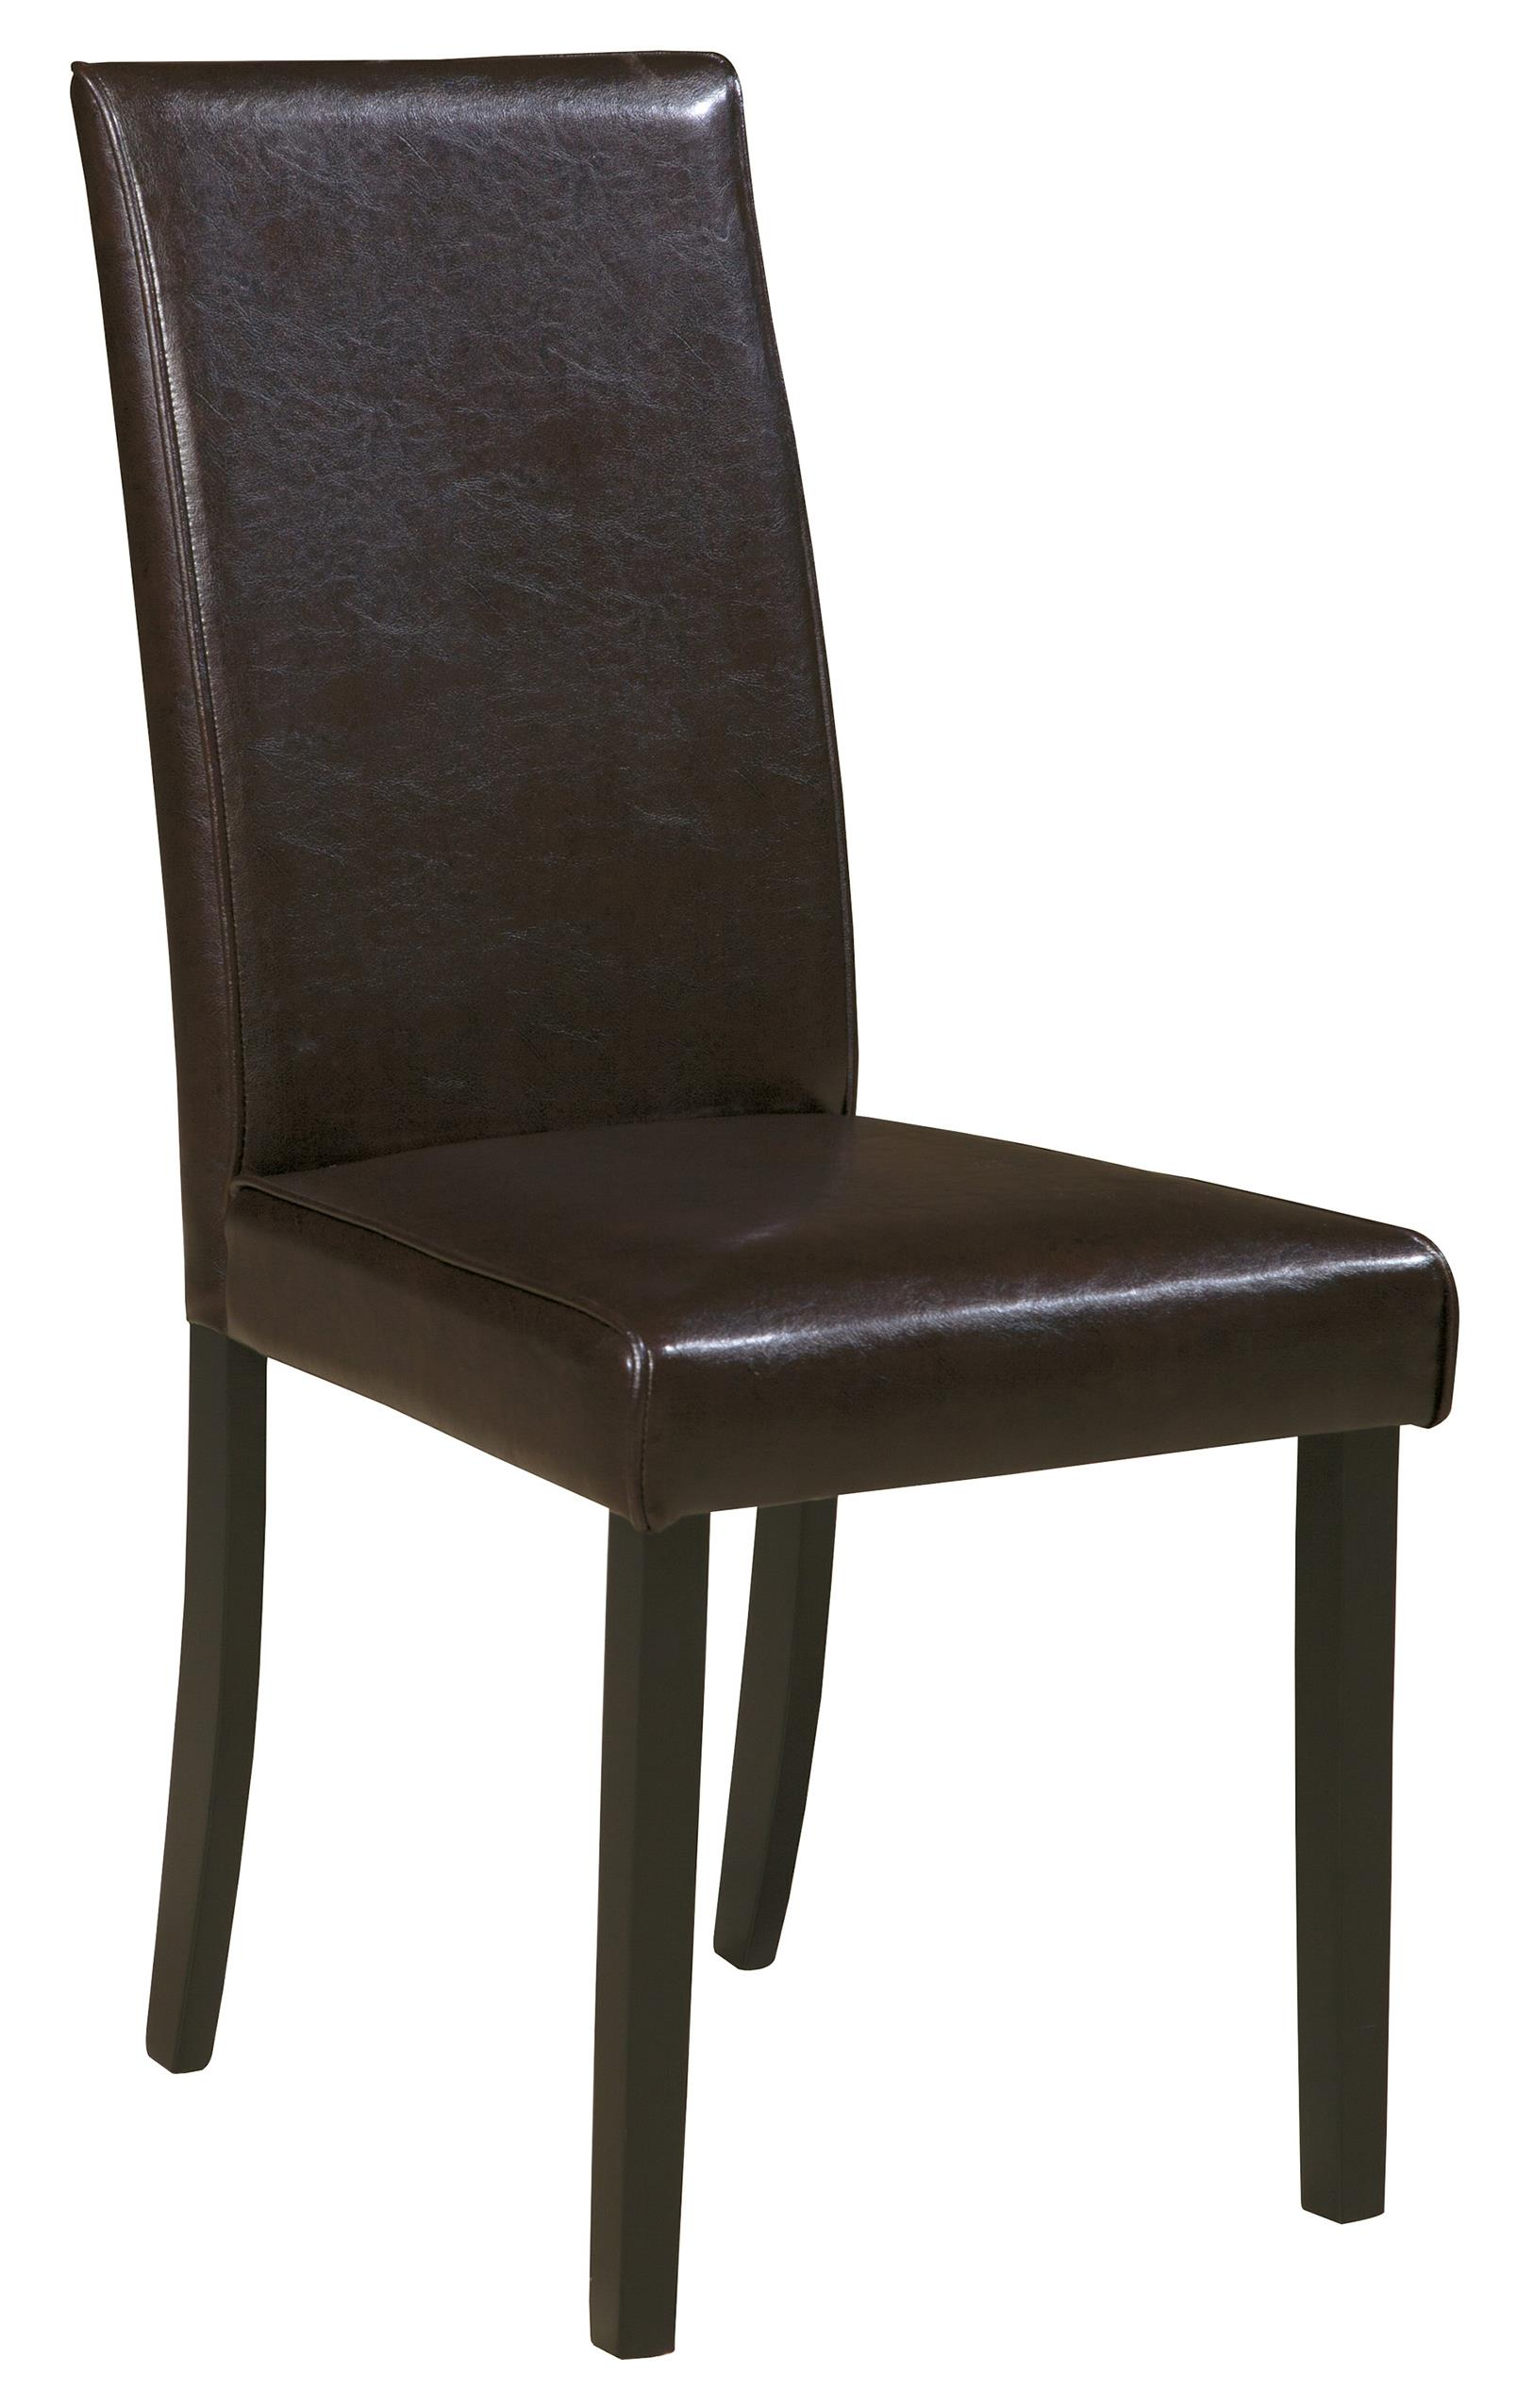 Signature Design by Ashley Kimonte Dining Upholstered Side Chair - Item Number: D250-02